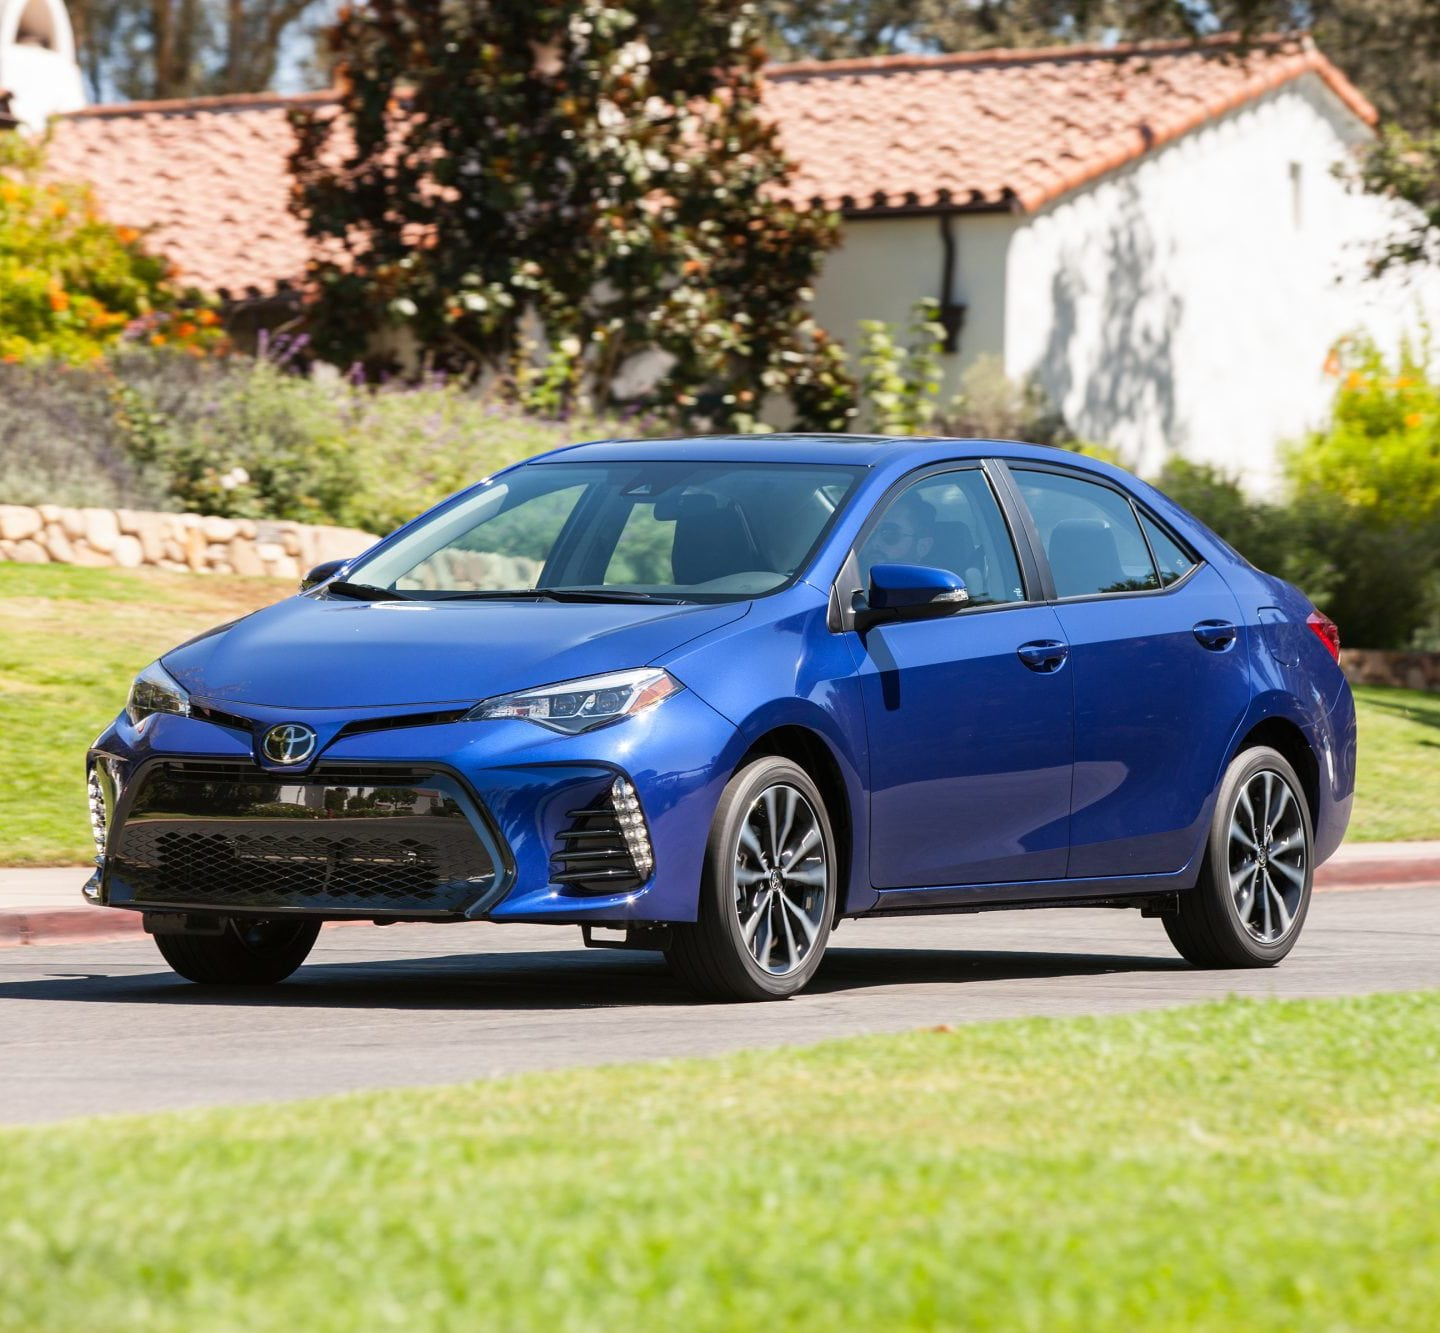 2018 Toyota Corolla Aims To Up the Game In Safety